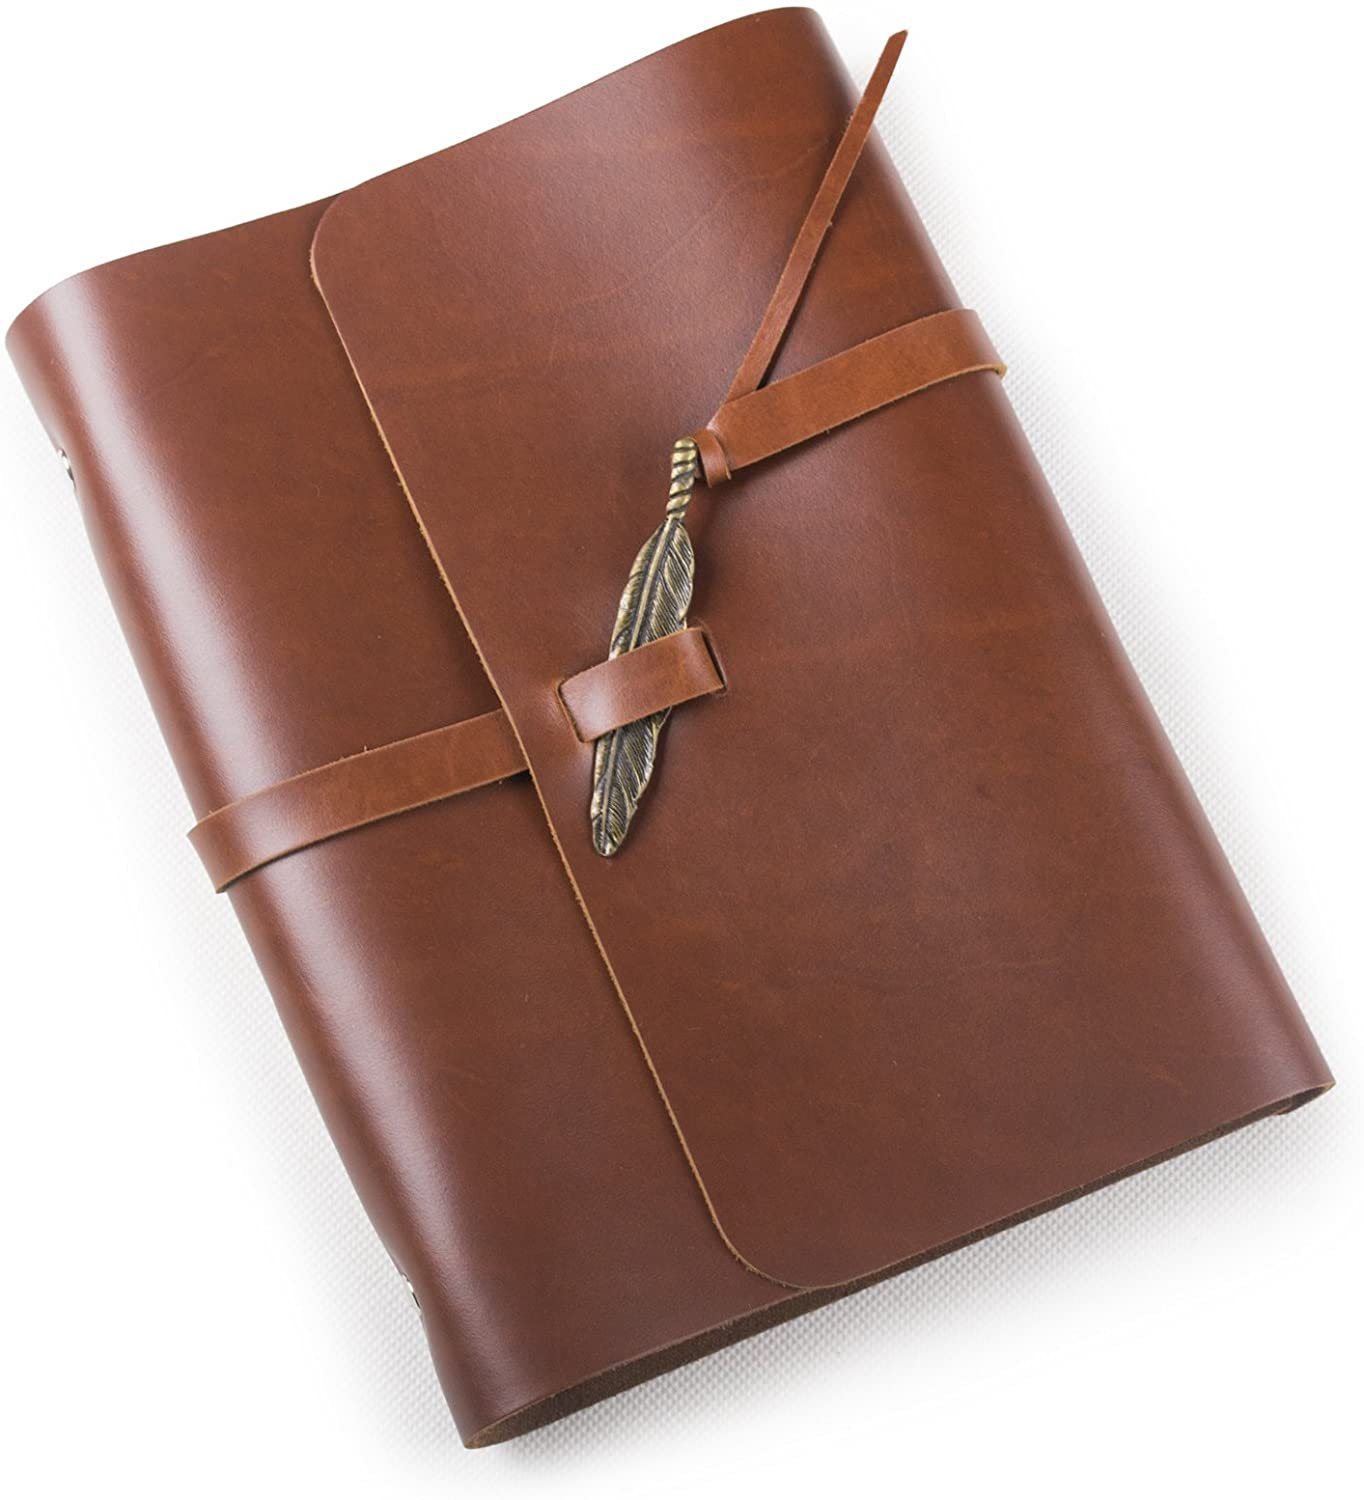 Ancicraft Soft Genuine Leather Journal Diary Notebook with Retro Feather Charm 6 Ring Binder A5 Lined Craft Paper (Red Brown & A5 Lined Craft Paper)